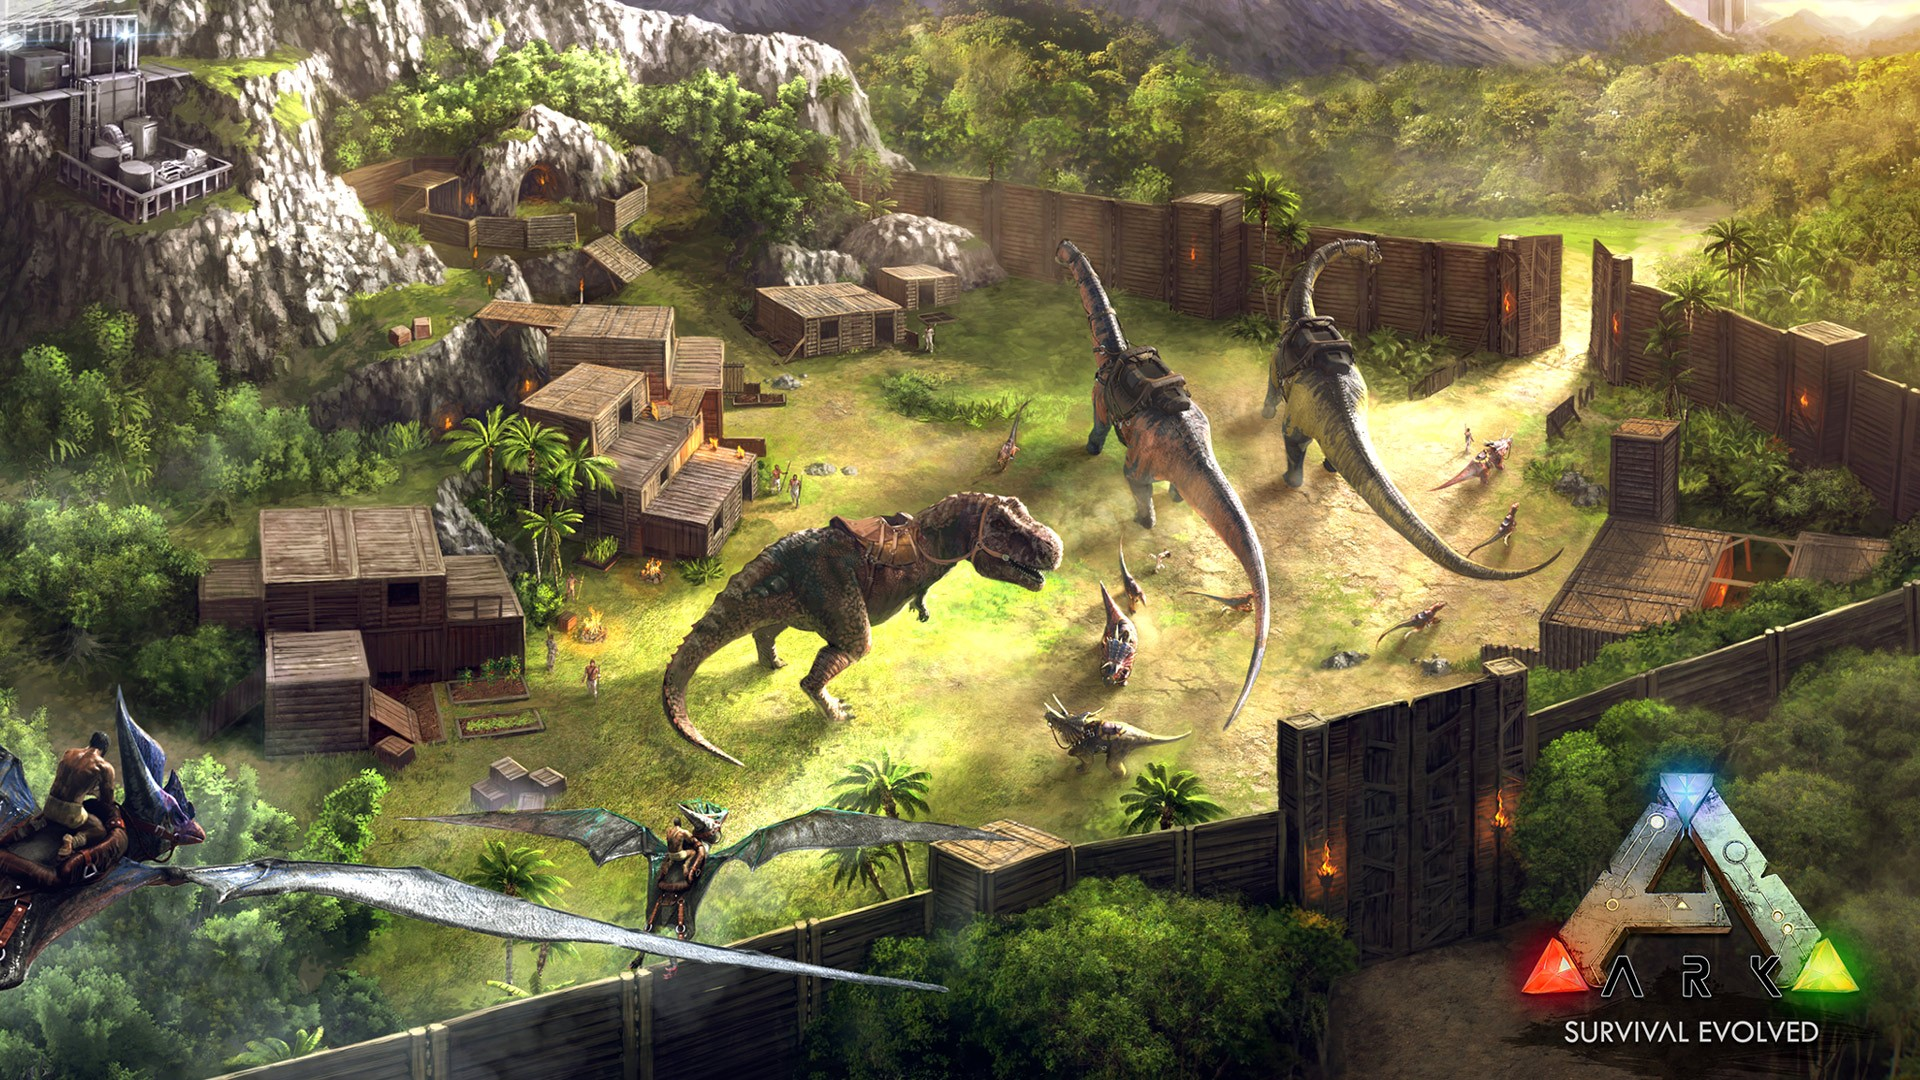 Ark Survival Evolved Wallpaper Download Free Awesome